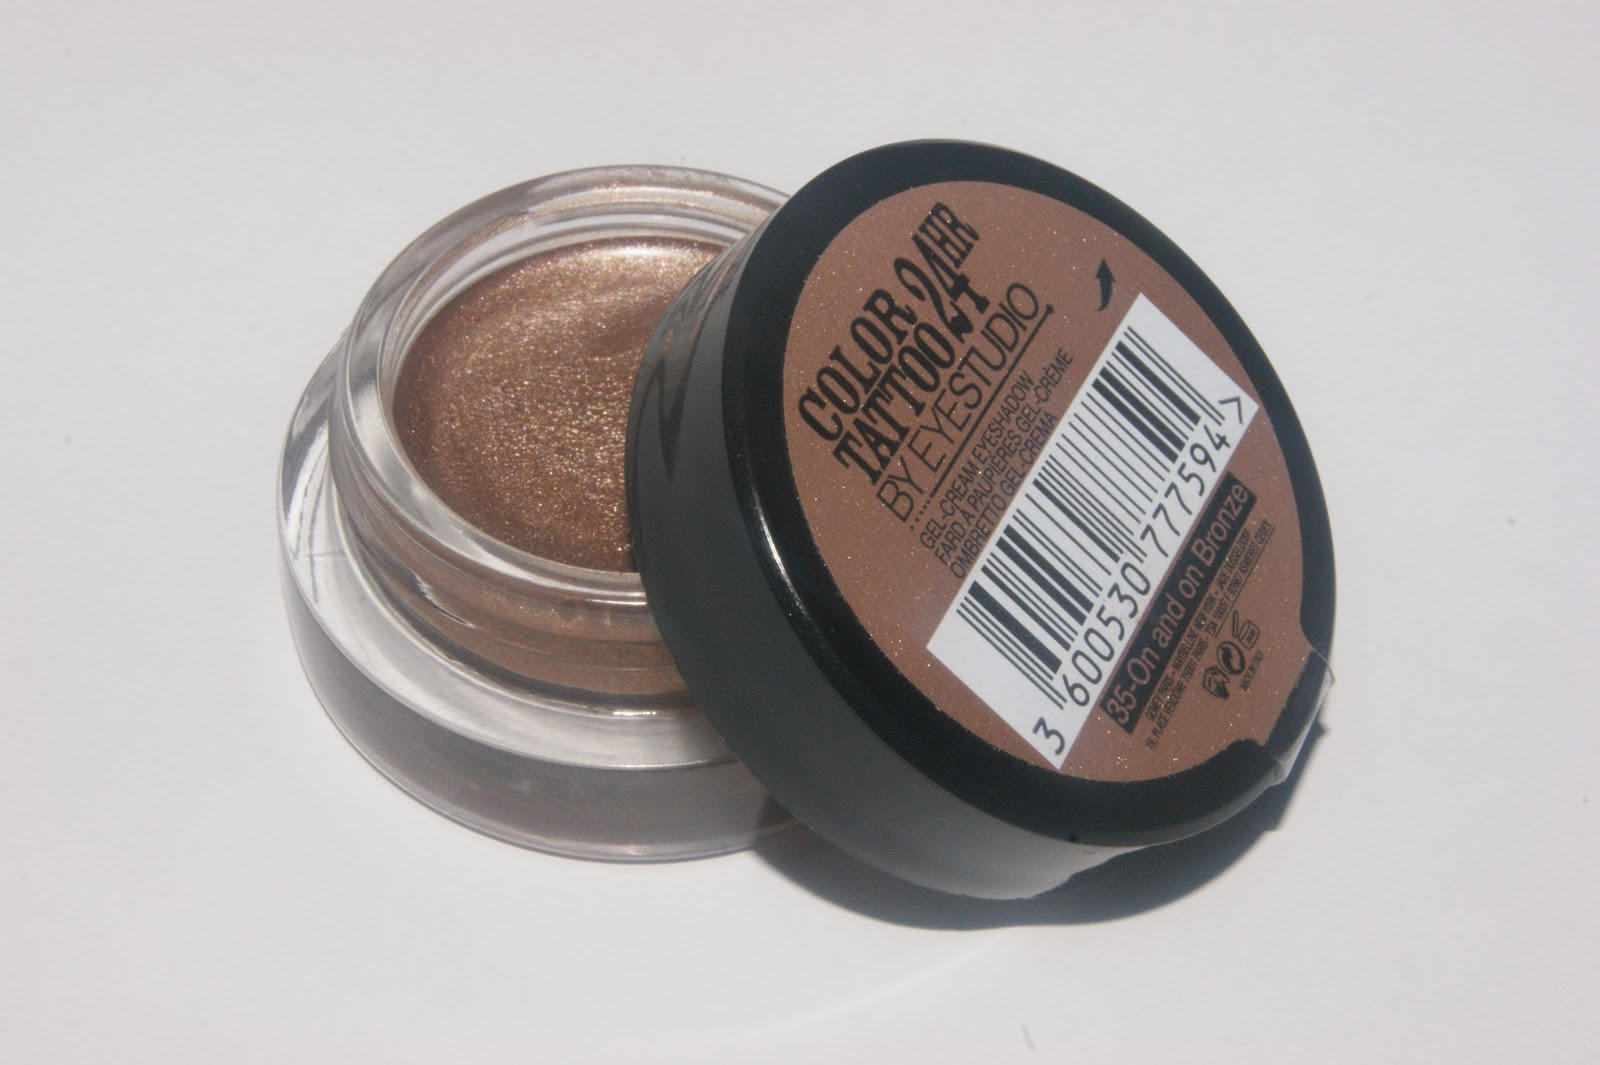 maybelline color 24hr eyeshadow in on and on bronze